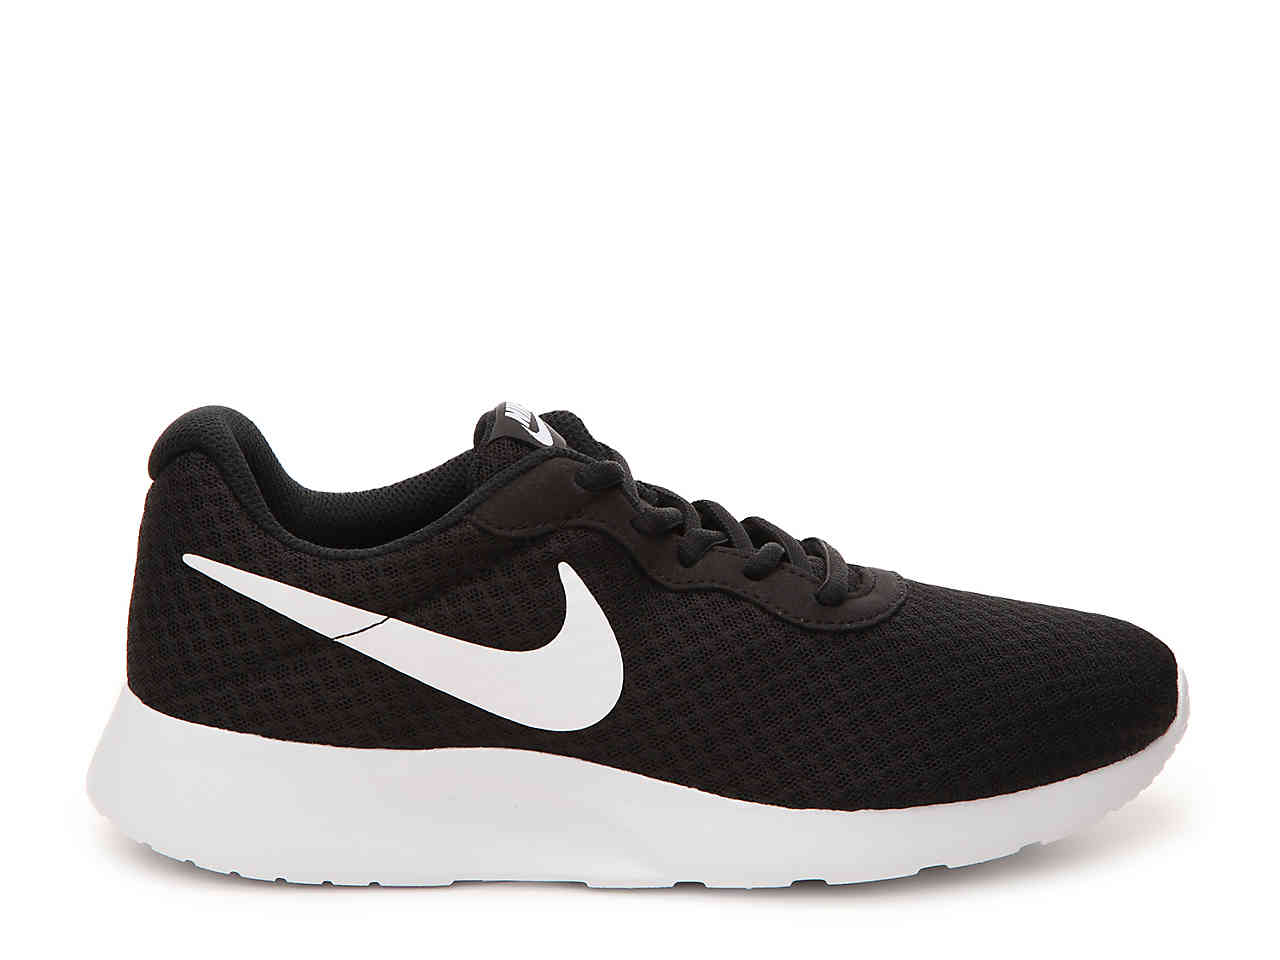 half off 92d2c 7ff74 Nike Sneakers  Nike × Men and Womens shoes 2018 - thesaladgr